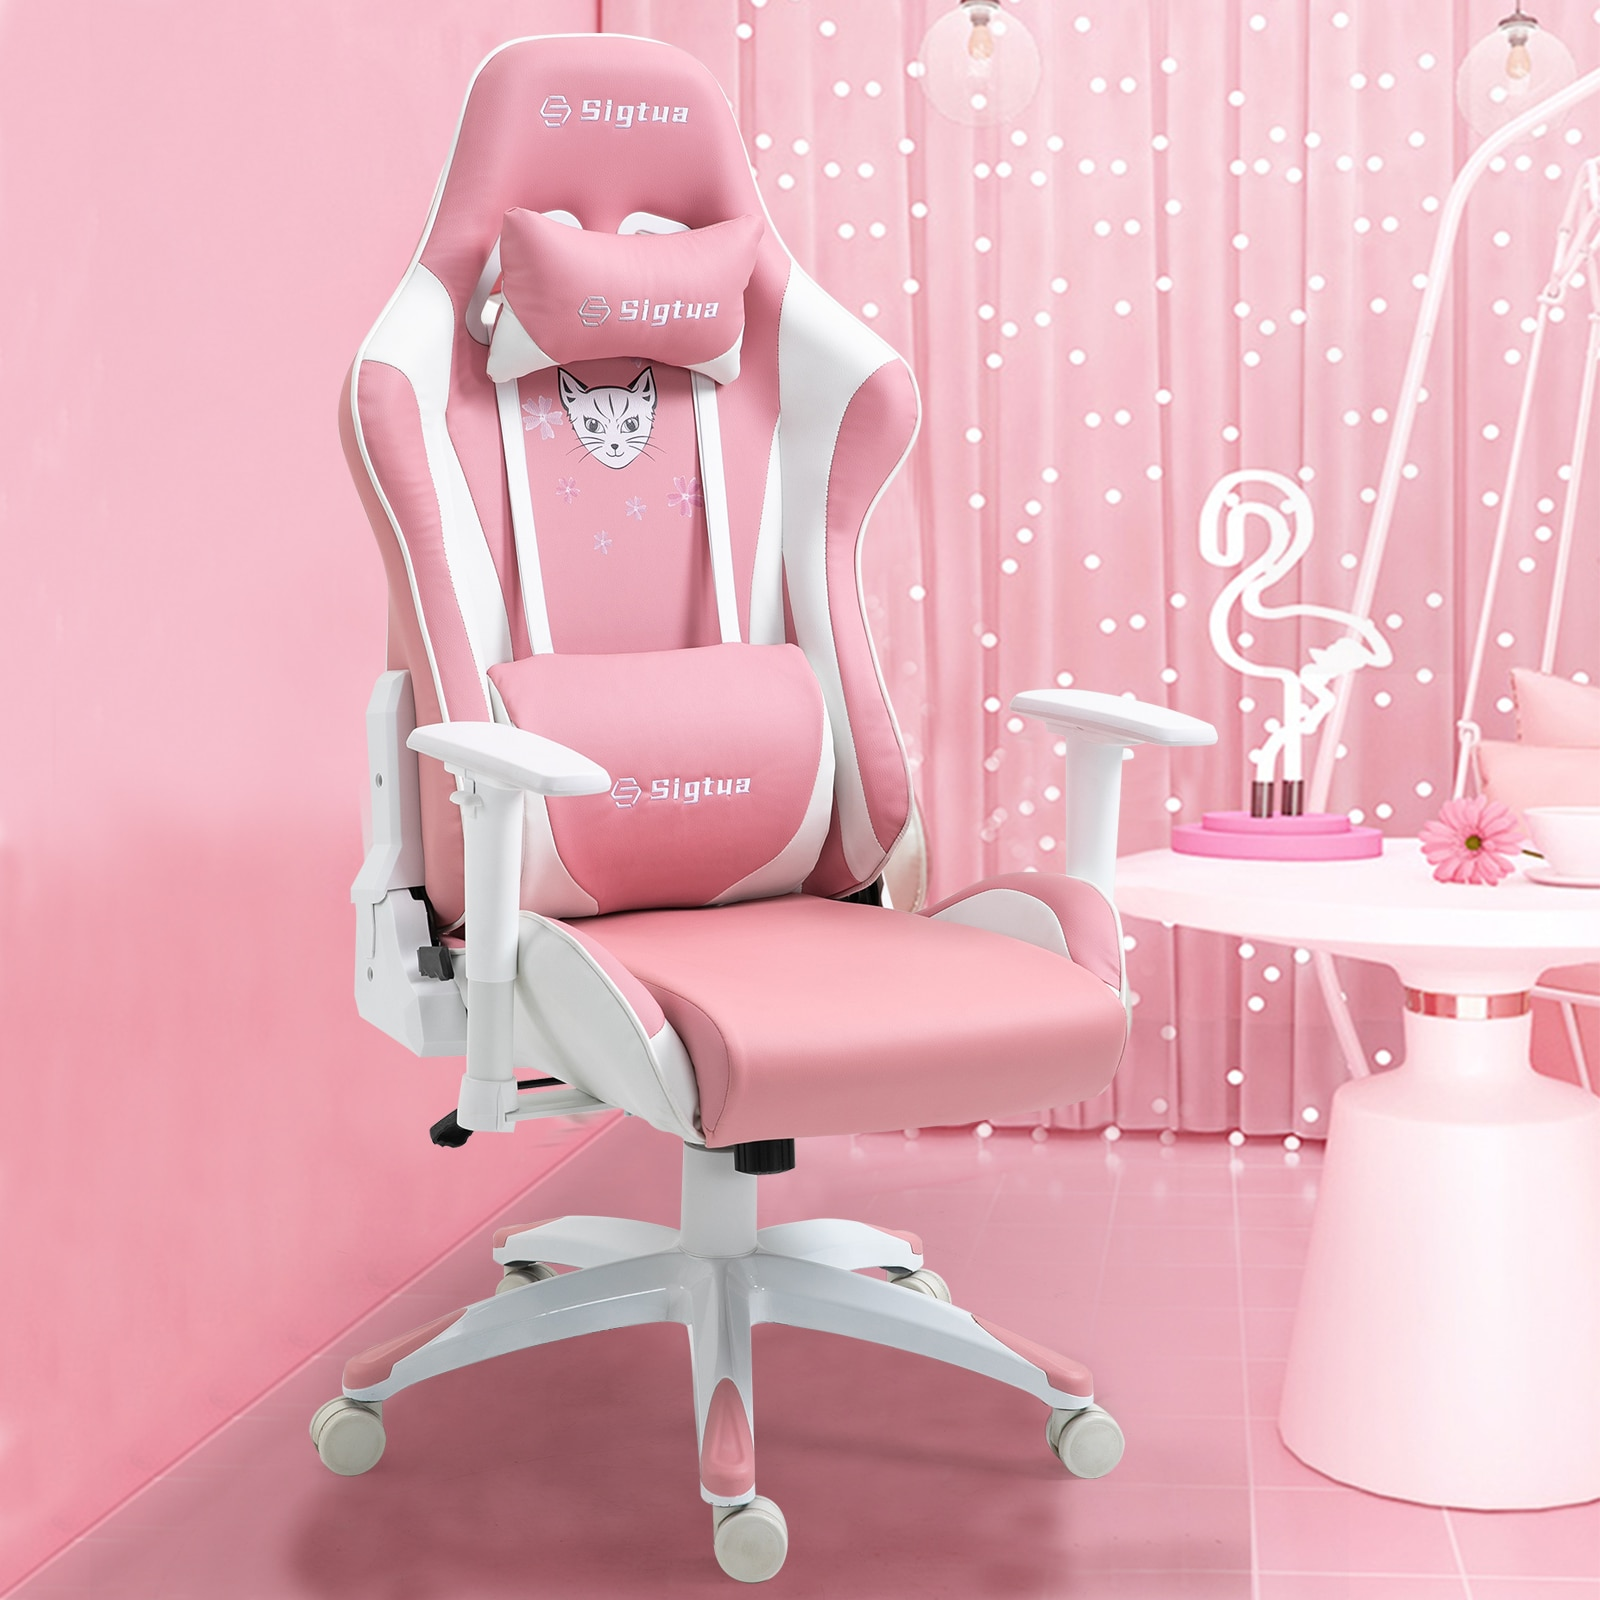 H0fe31a357d9048fe99316d58c5a70a6eo - Sigtua Pink Gaming Office Chair Height-adjustable Armrests Computer Chair Ergonomic Swivel Executive Chair with High Backrest